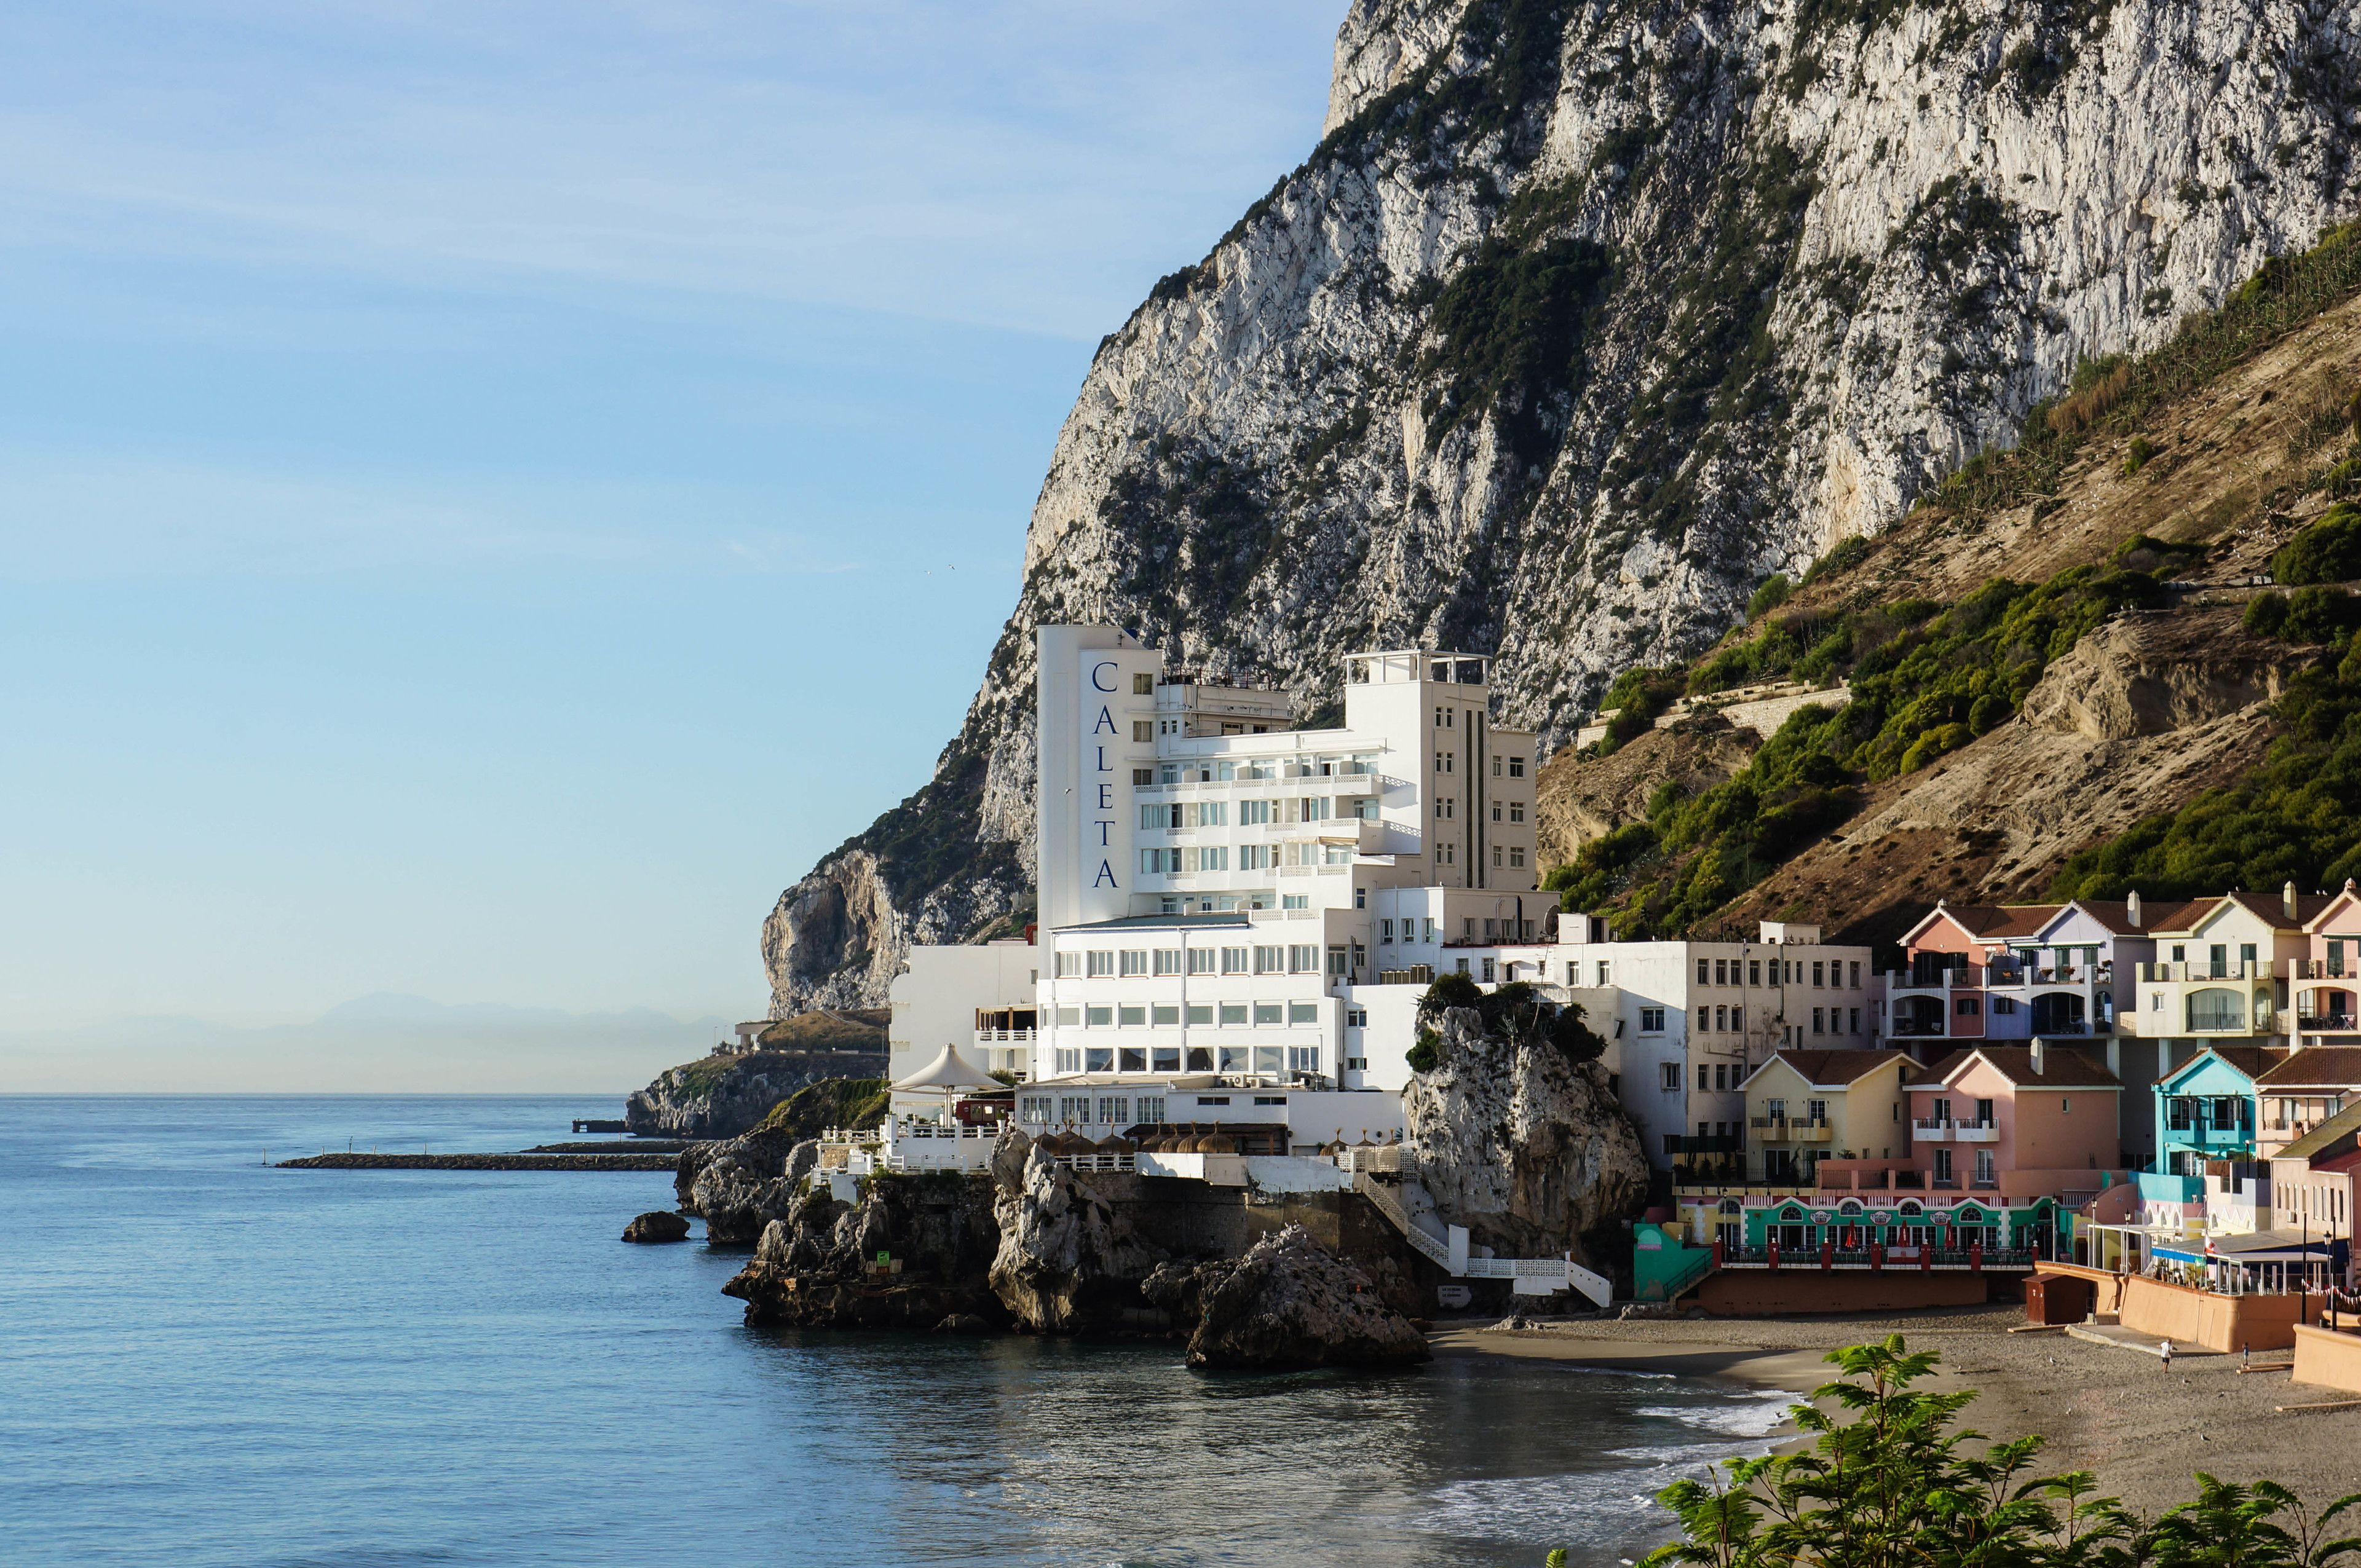 The Caleta Health, Beauty and Conference Centre